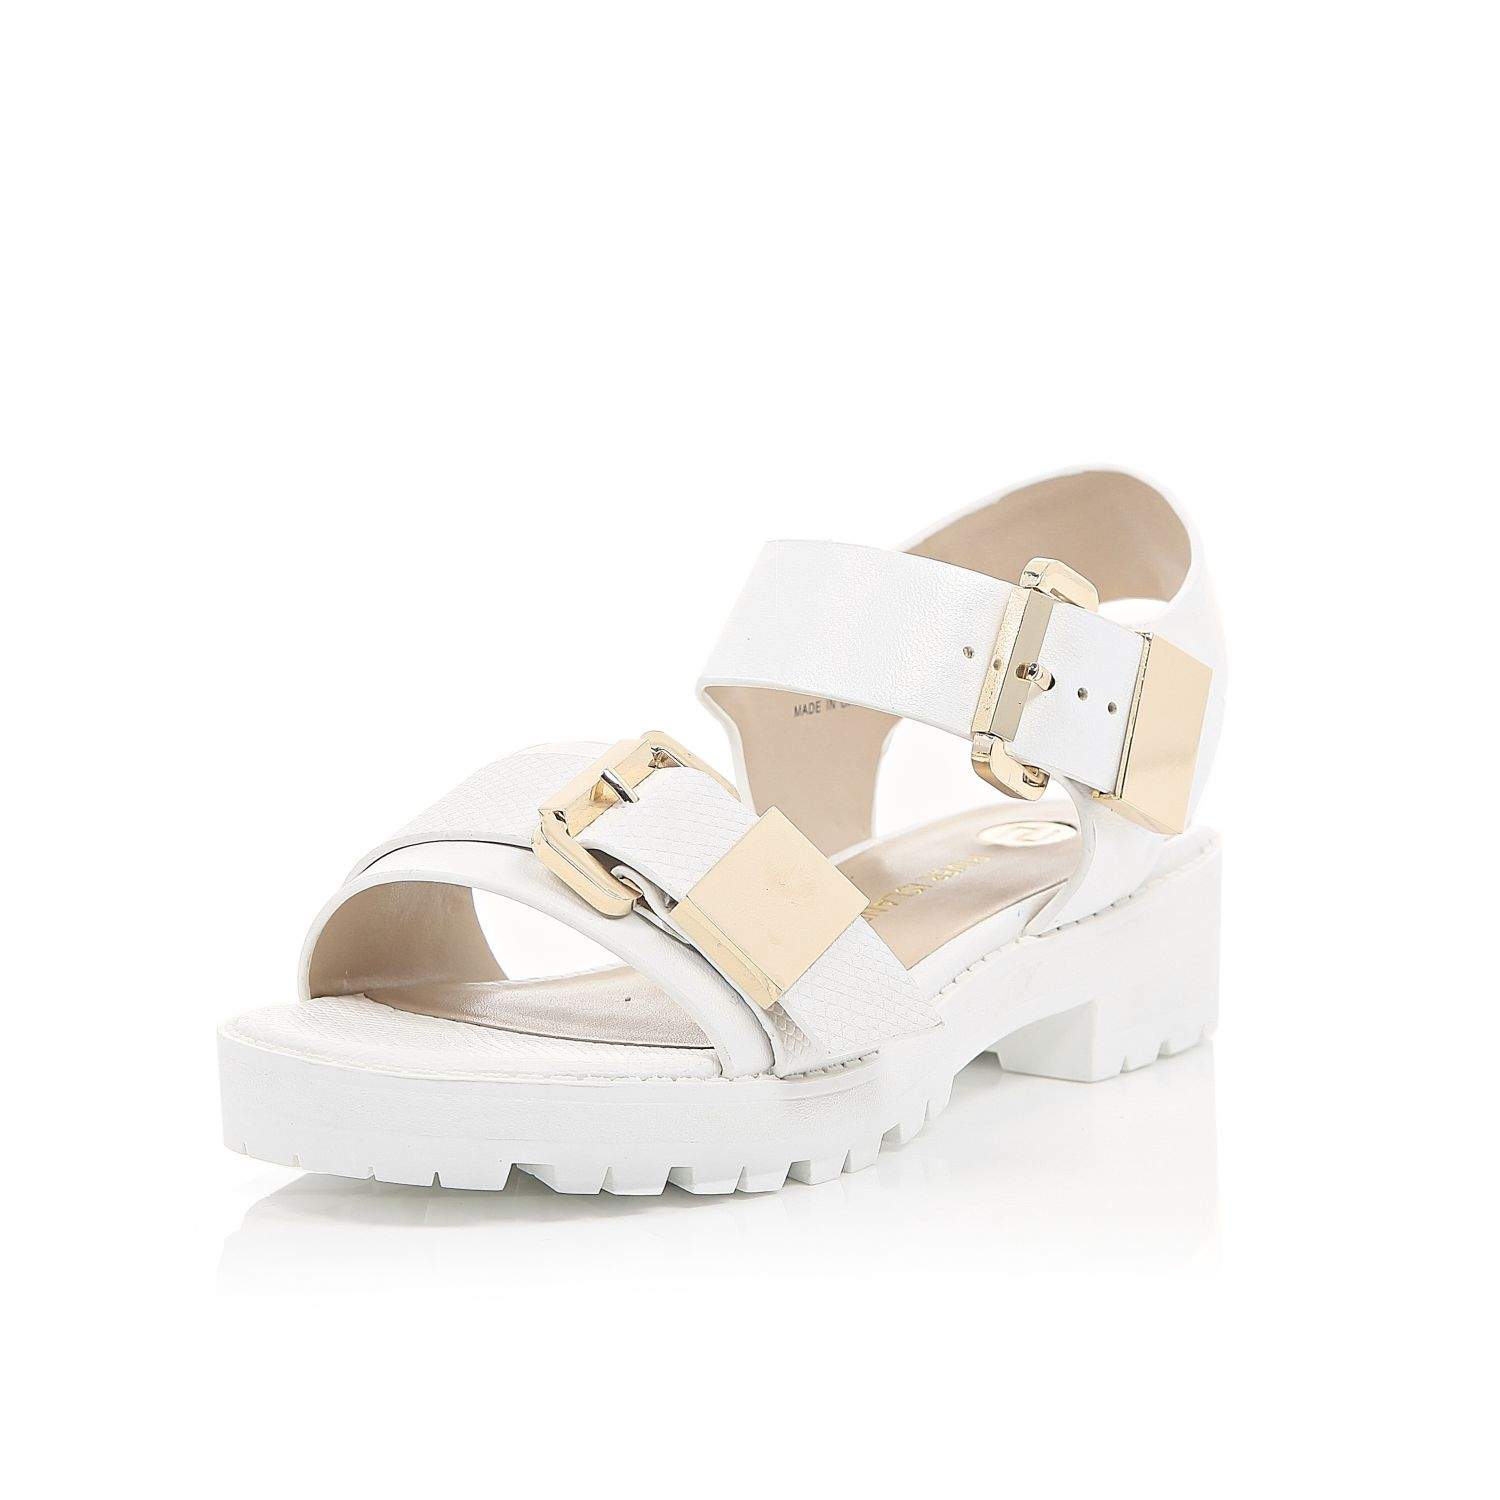 22e443e59bd River Island White Snake Print Chunky Cleated Sandals in White - Lyst